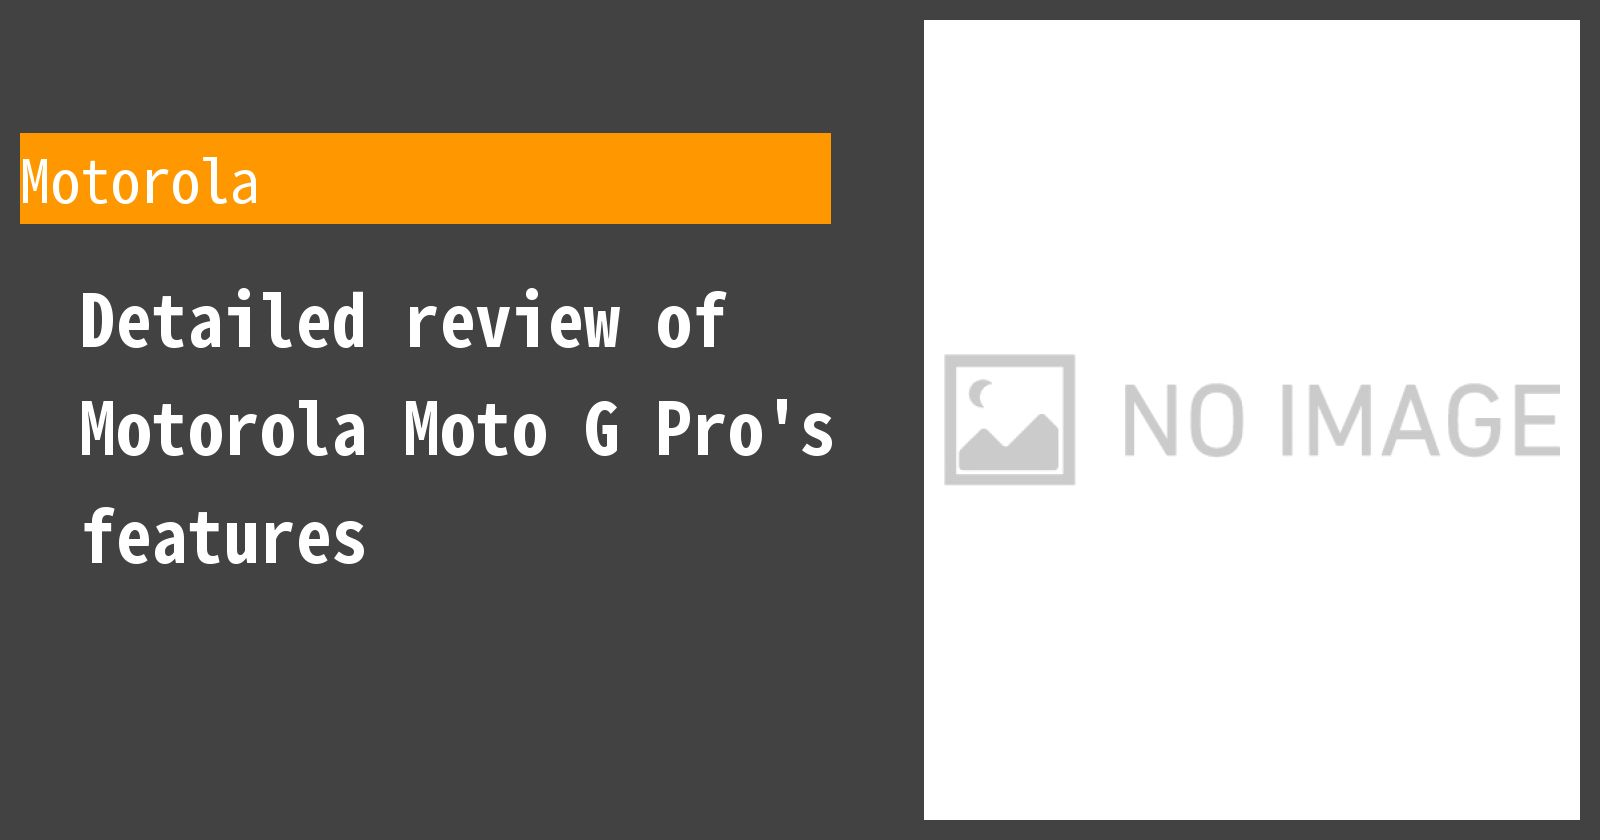 Detailed review of Motorola Moto G Pro's features